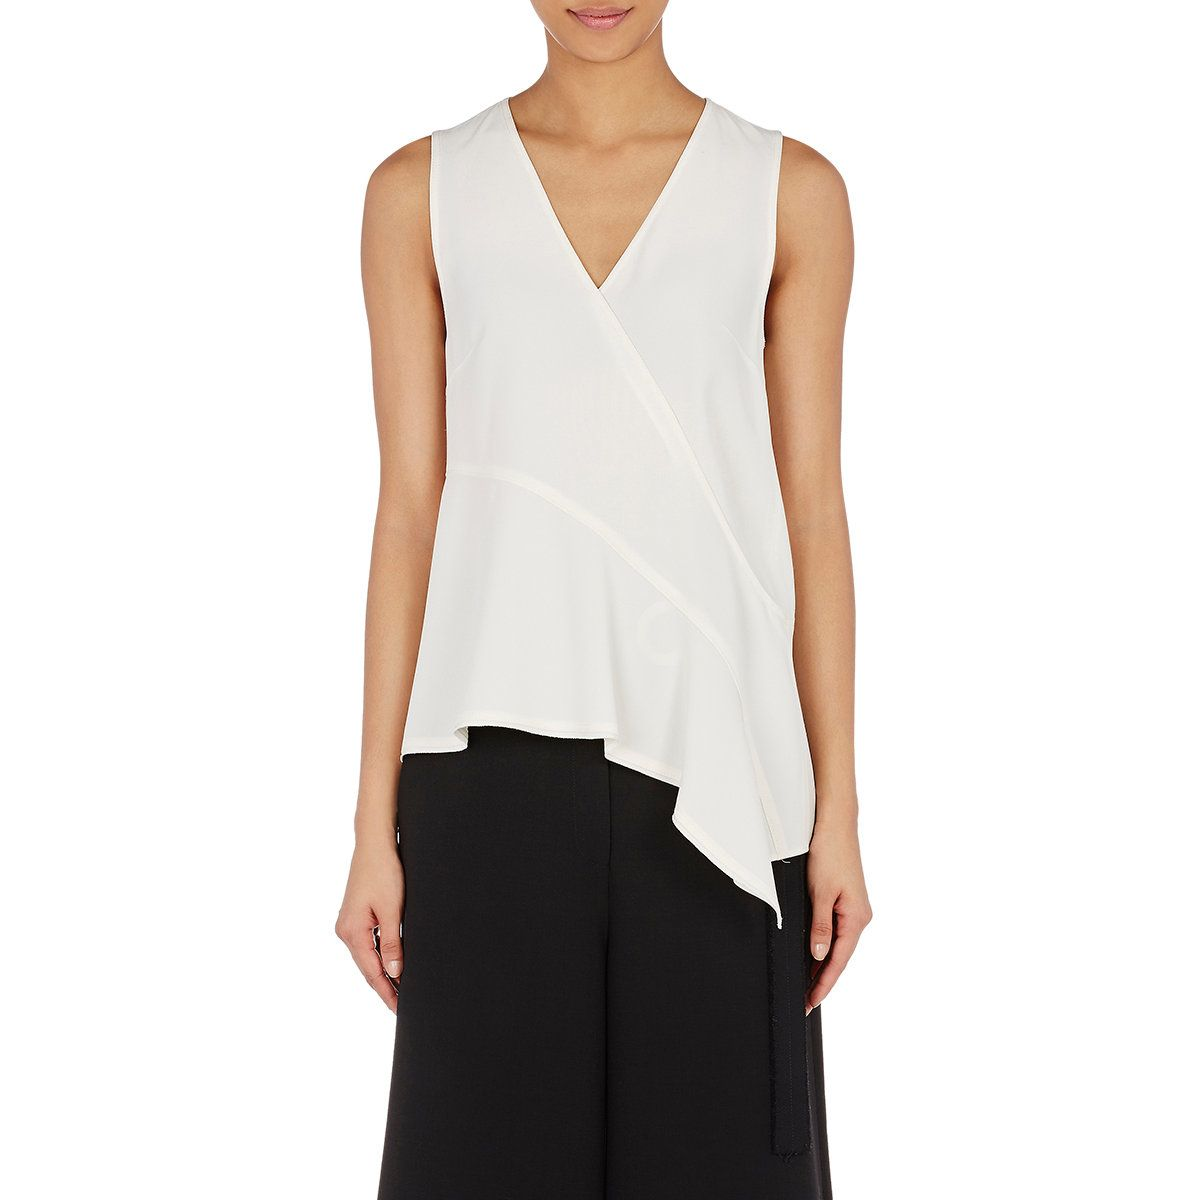 asymmetrical tops for women - Yahoo Image Search Results